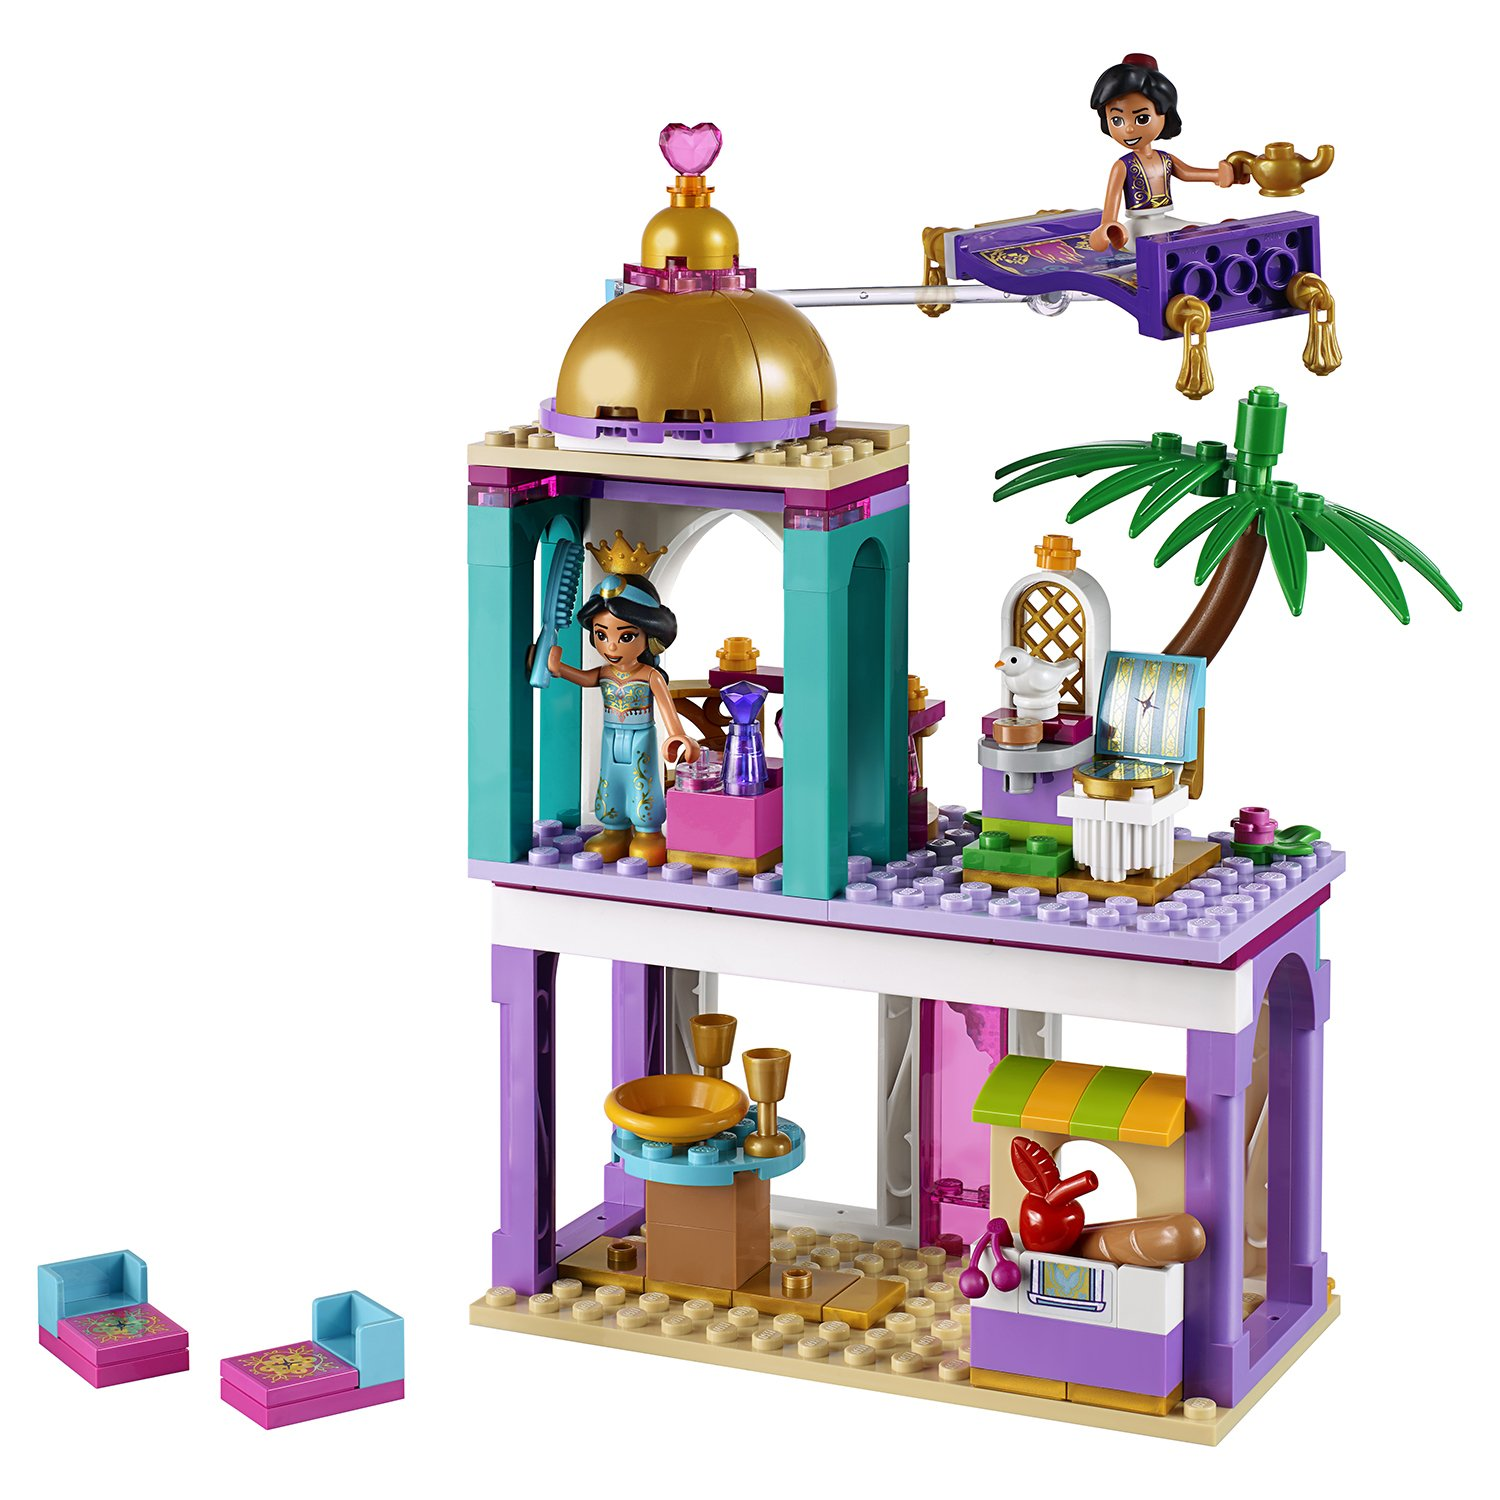 Lego Disney Princess 41161 Приключения Аладдина и Жасмин во дворце